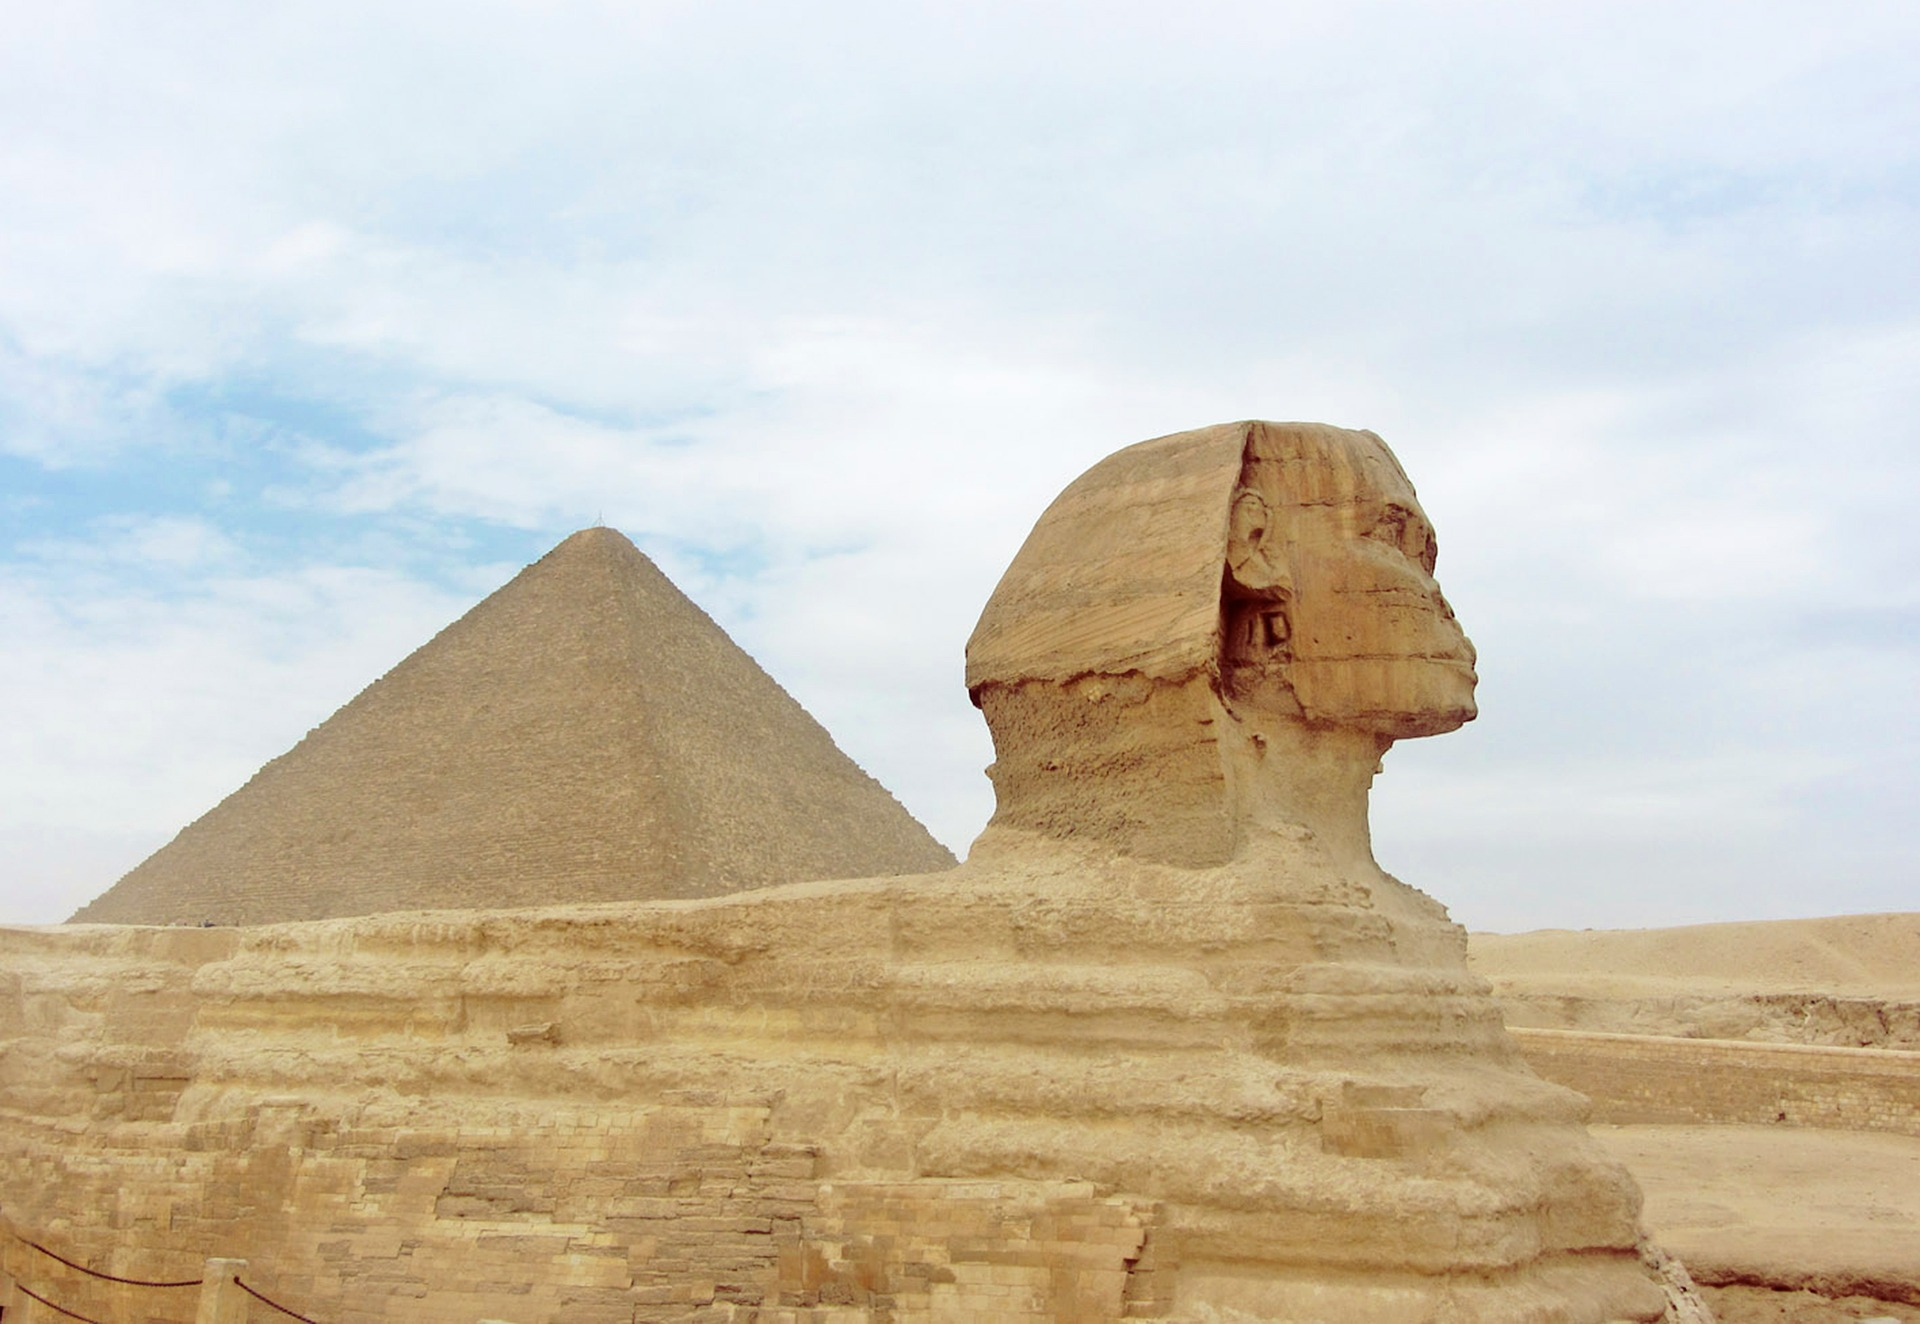 Treasures of Egypt & The Nile - Great Pyramid of Giza & Great Sphinx of Giza, Cairo, Egypt